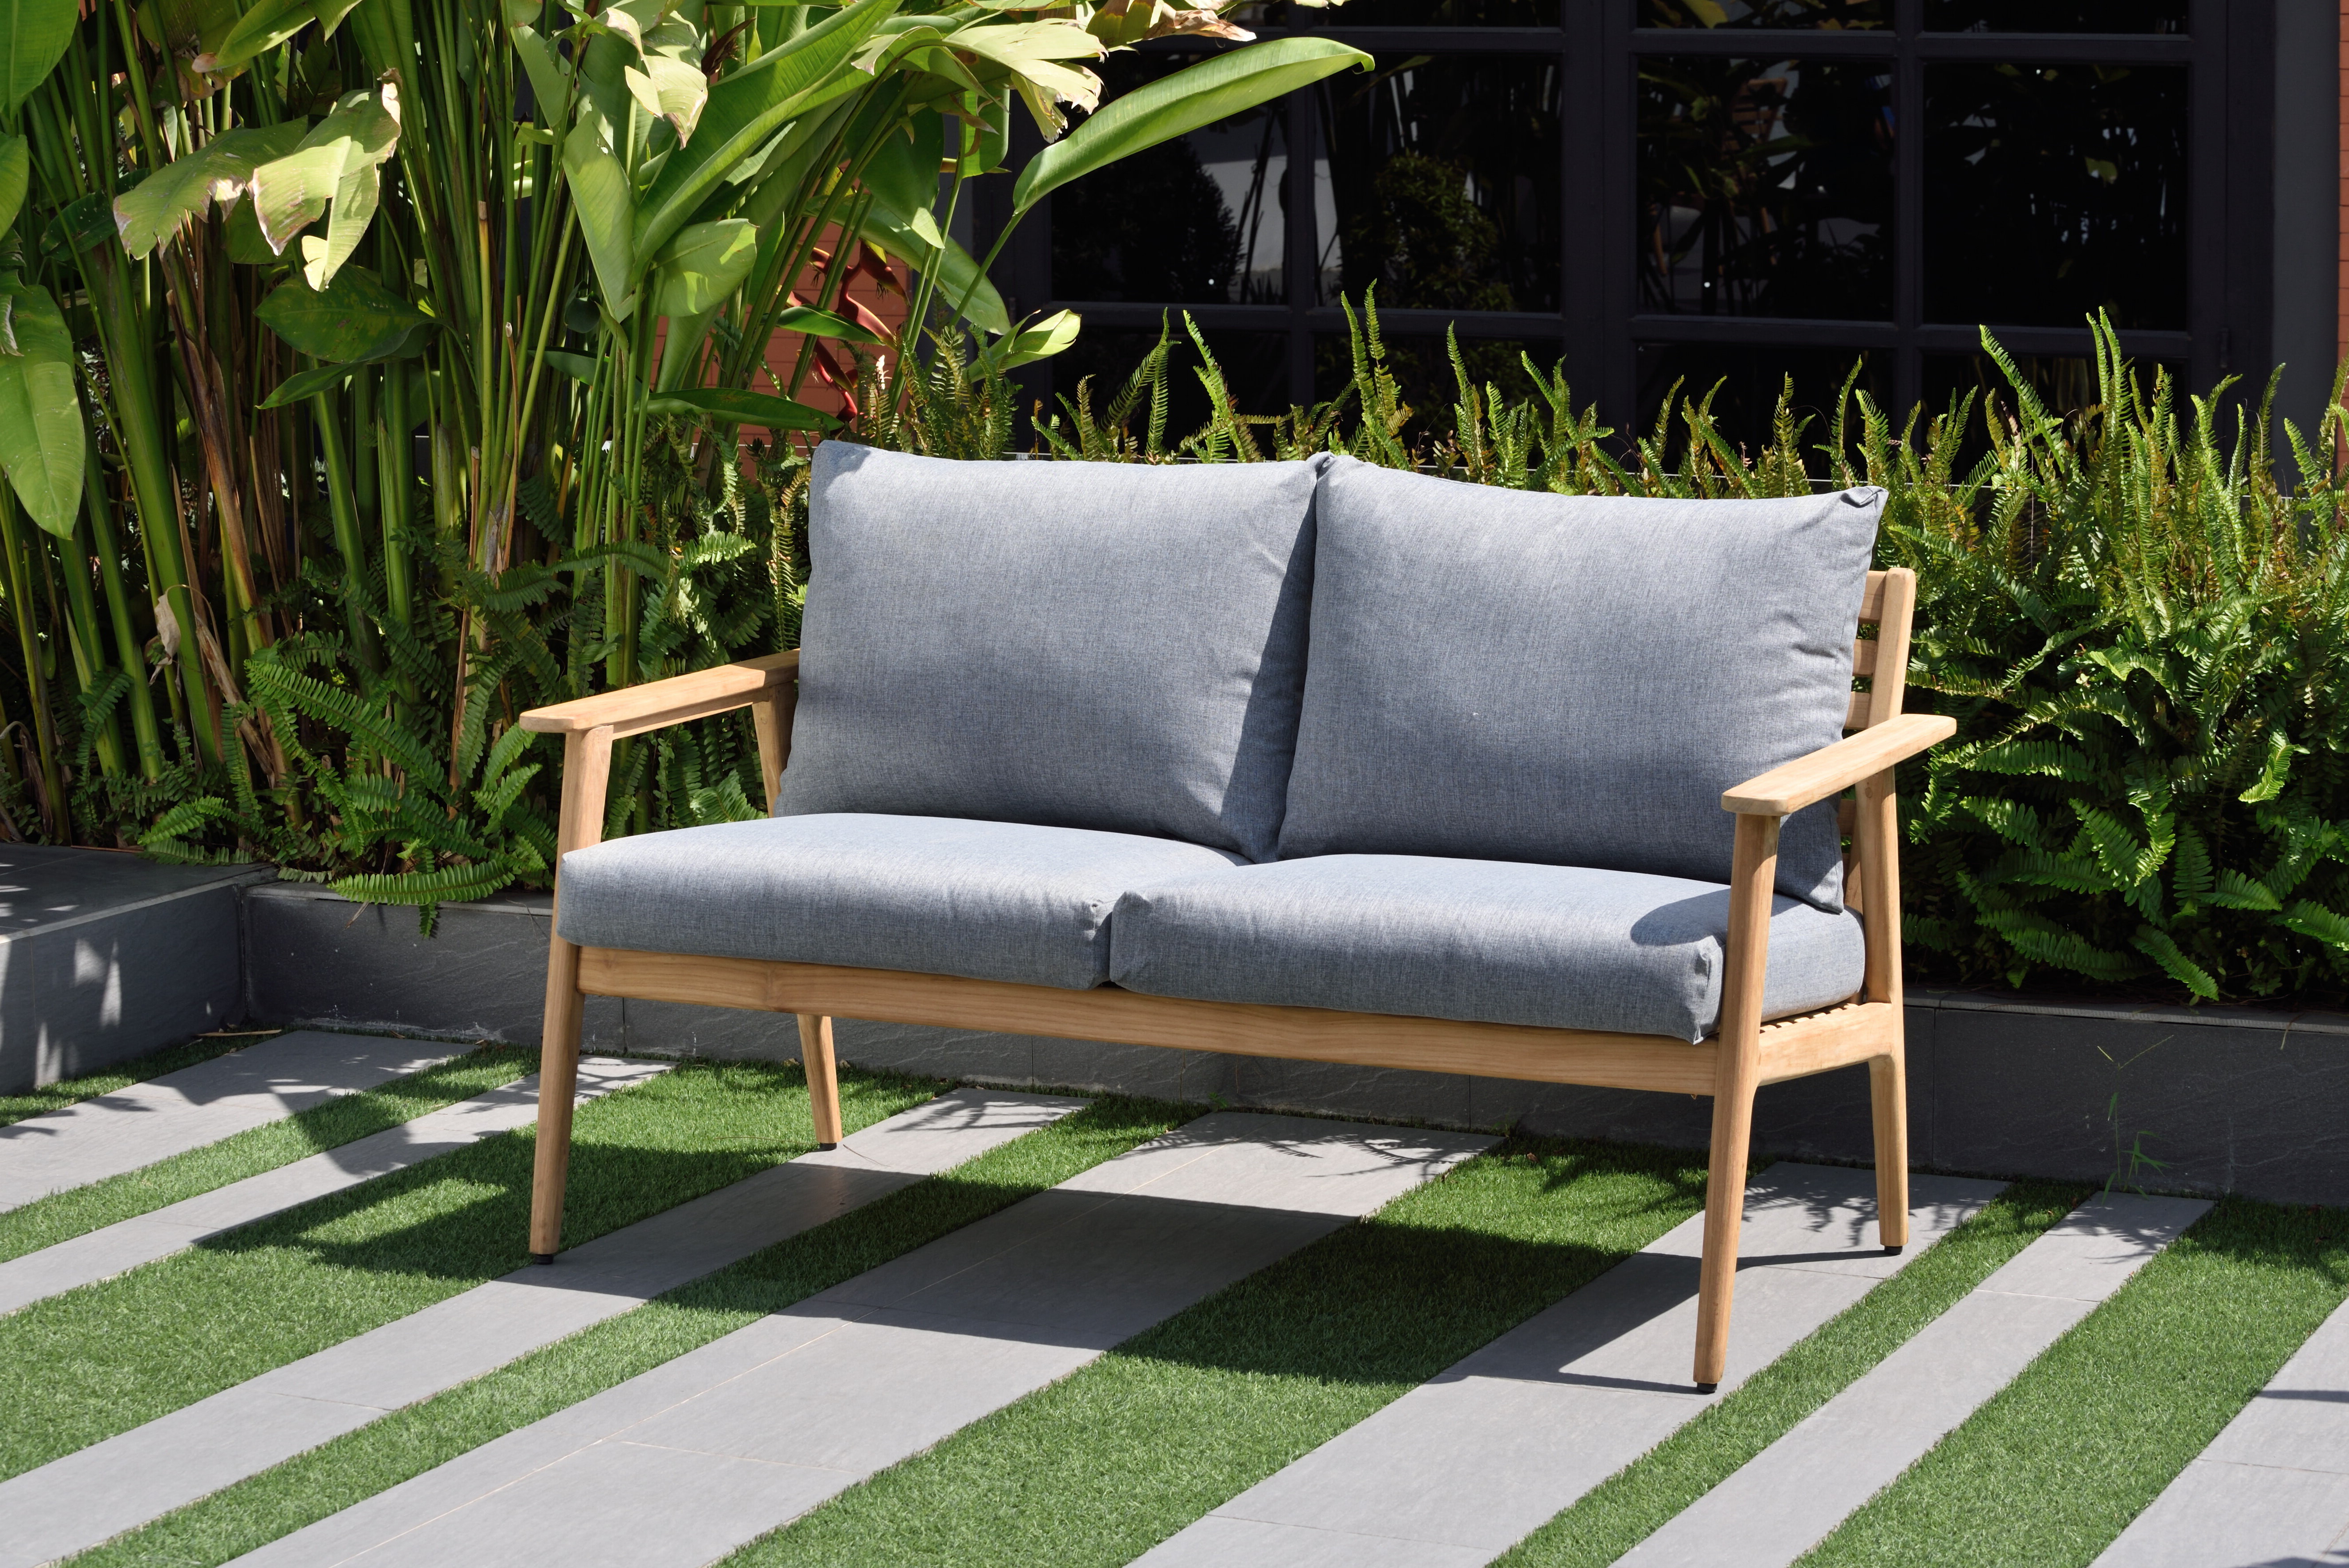 Clary Teak Lounge Patio Daybeds With Cushion With Regard To Widely Used Darrah Deep Seating Teak Patio Sofa With Cushions (View 8 of 20)